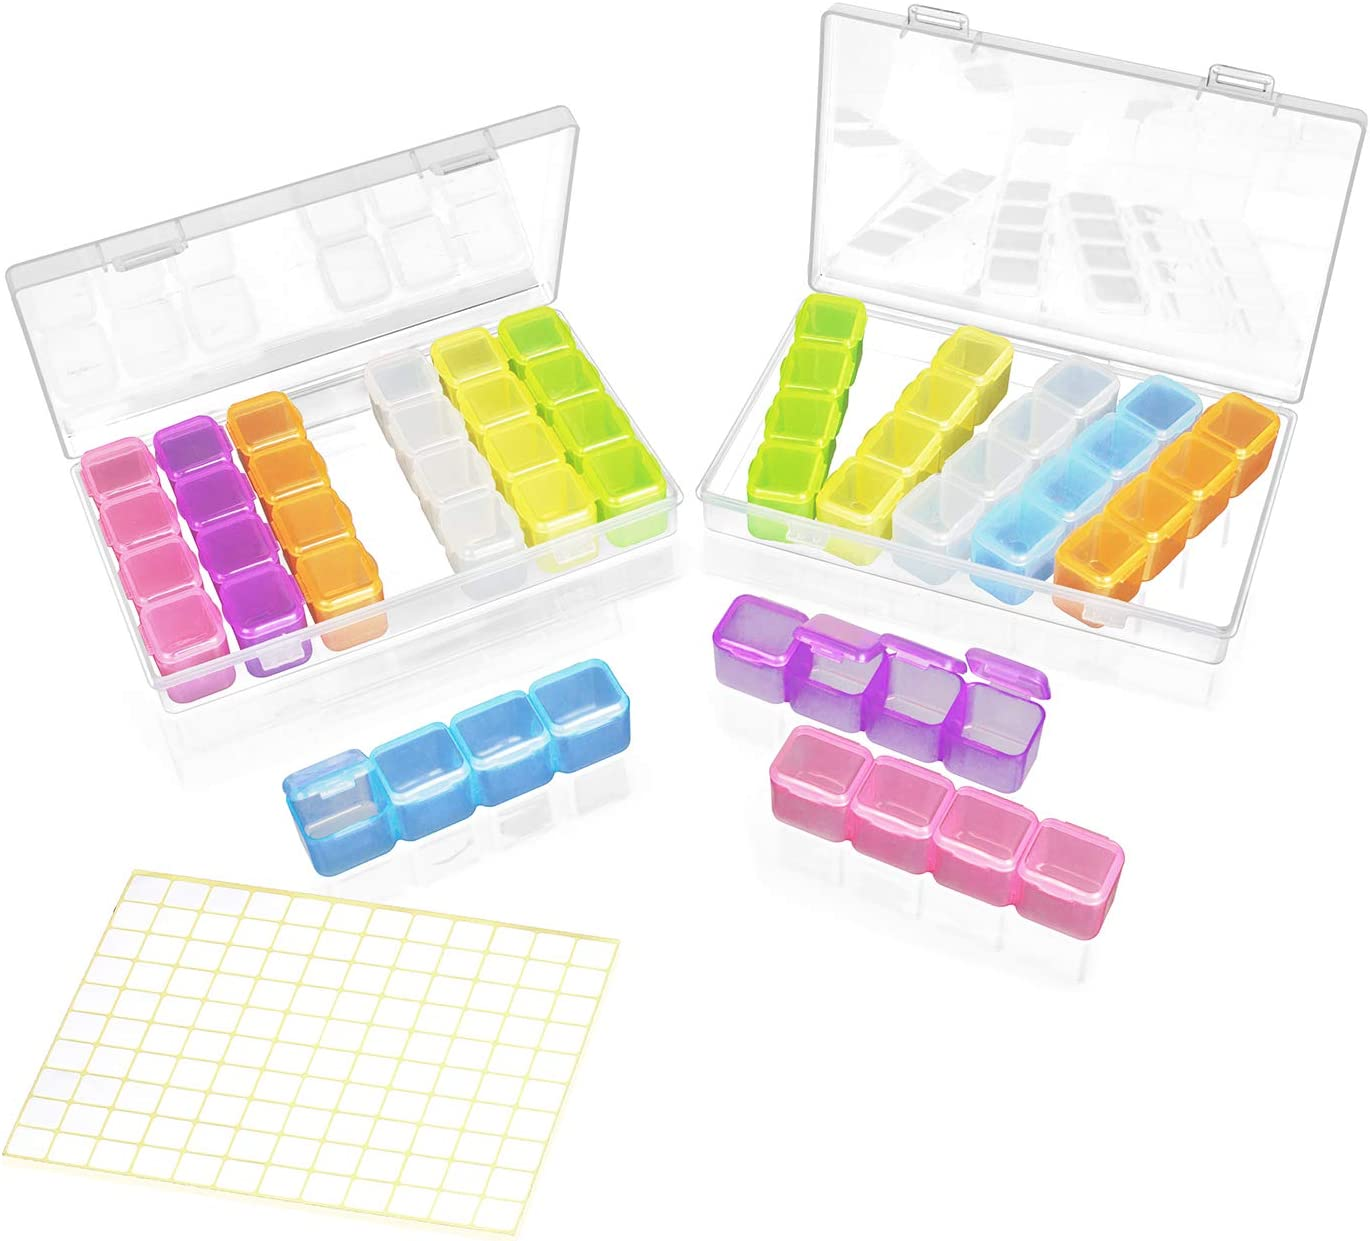 Total 14 Individual Removable Organizer Rows of 4 Conjoined Painting Gems Divider Bin 6.9x4.2x1 inch ADVcer 2 Pack 28 Grids Diamond Embroidery Bead Storage Containers Box with 120pcs Label Stickers